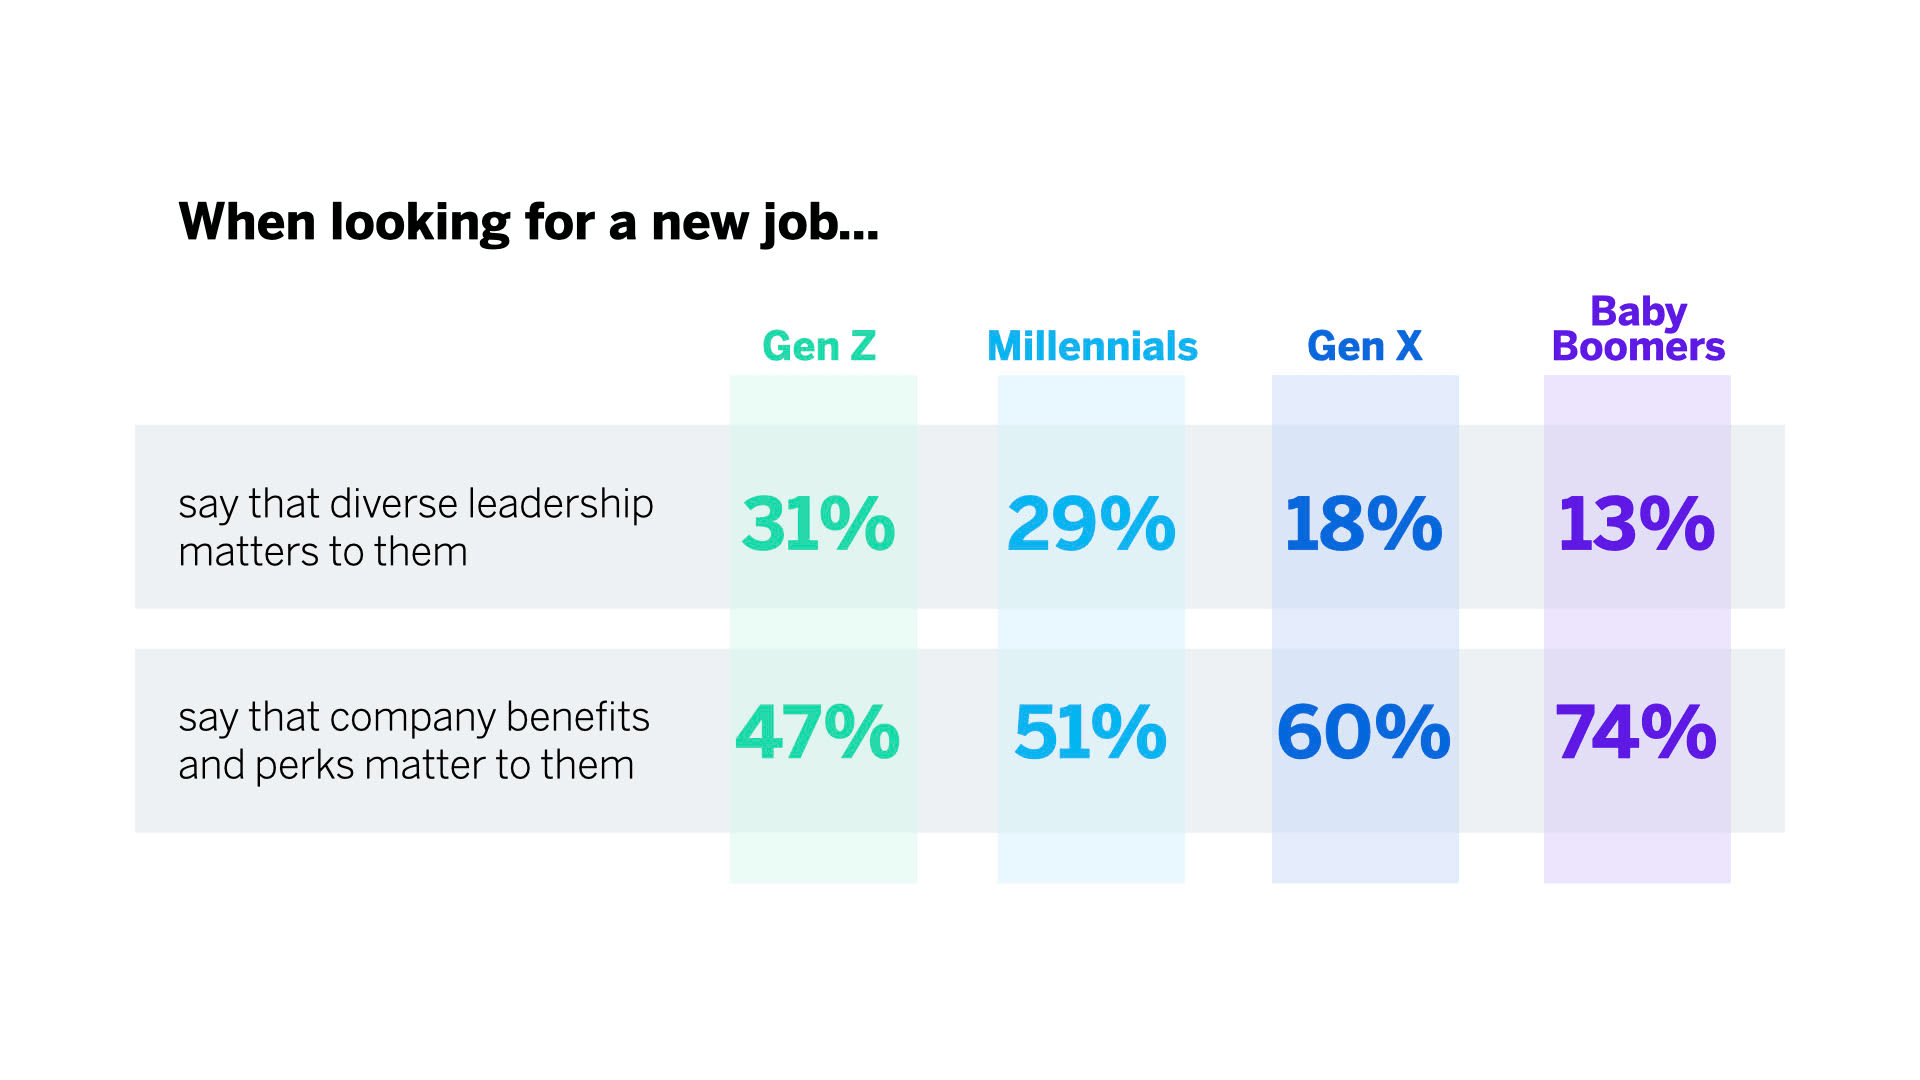 What different people say matters to them when looking for a new job.